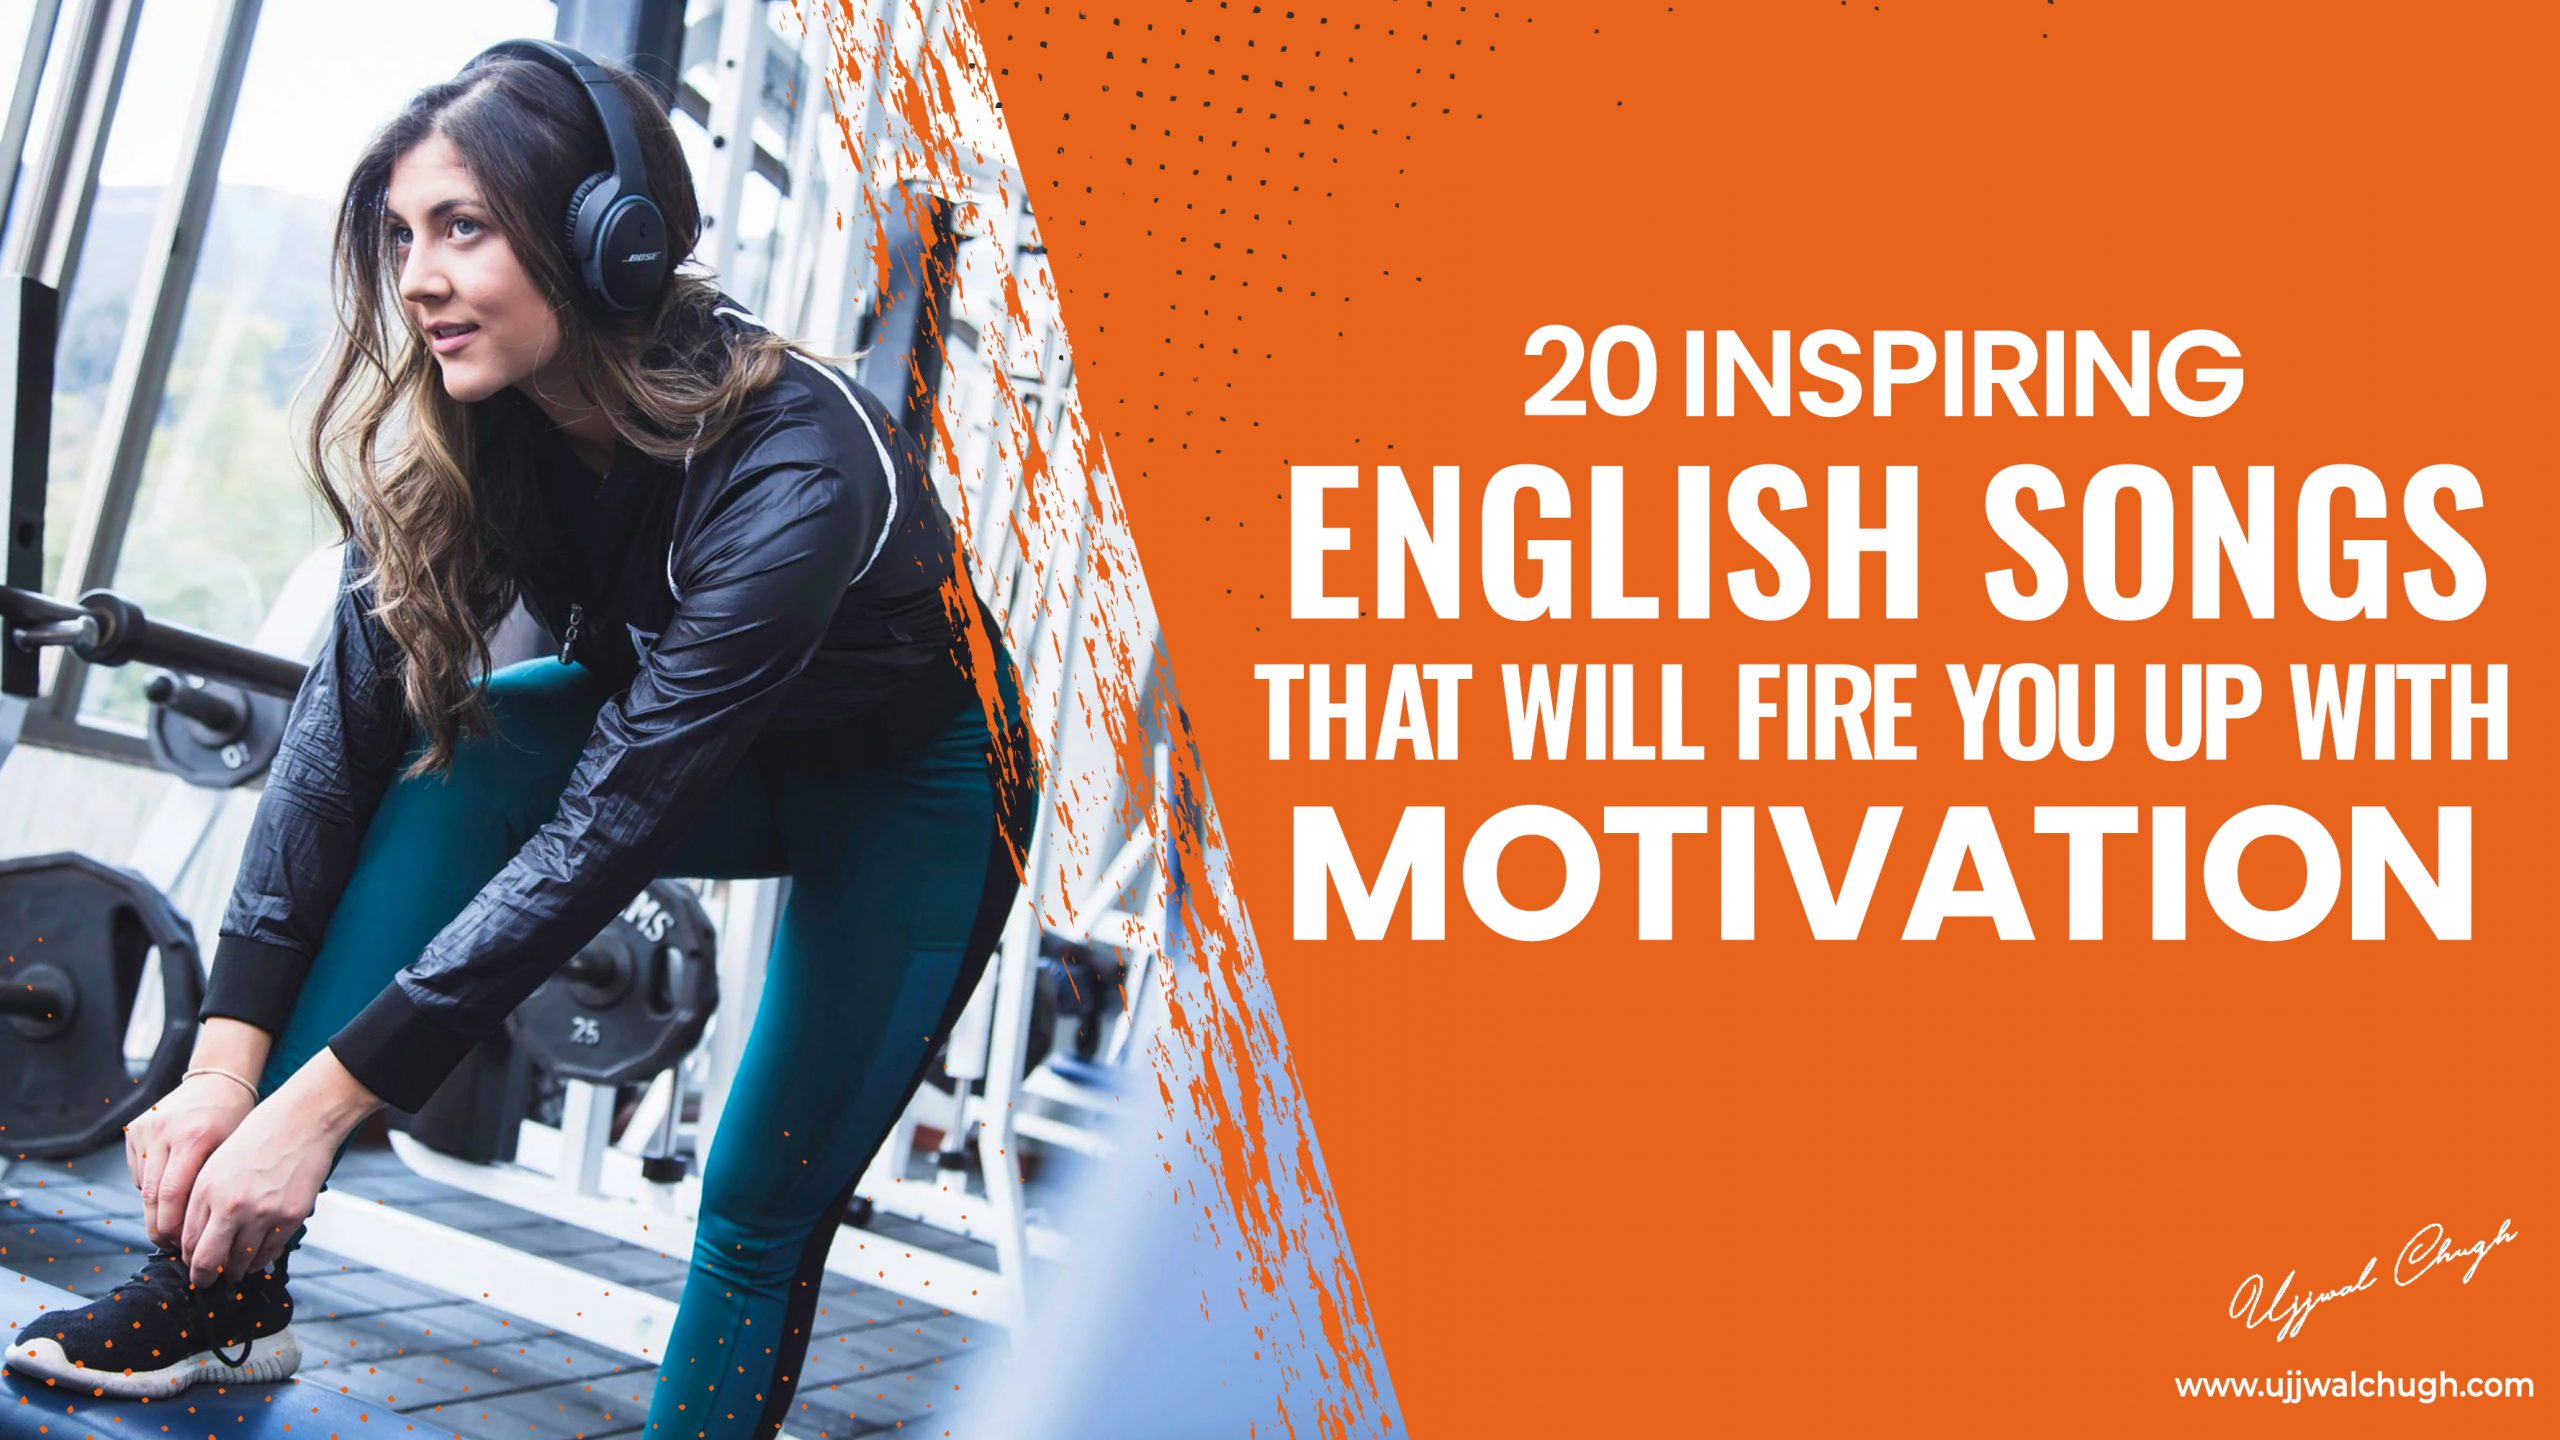 20 Inspiring English Songs That Will Fire You Up With Motivation